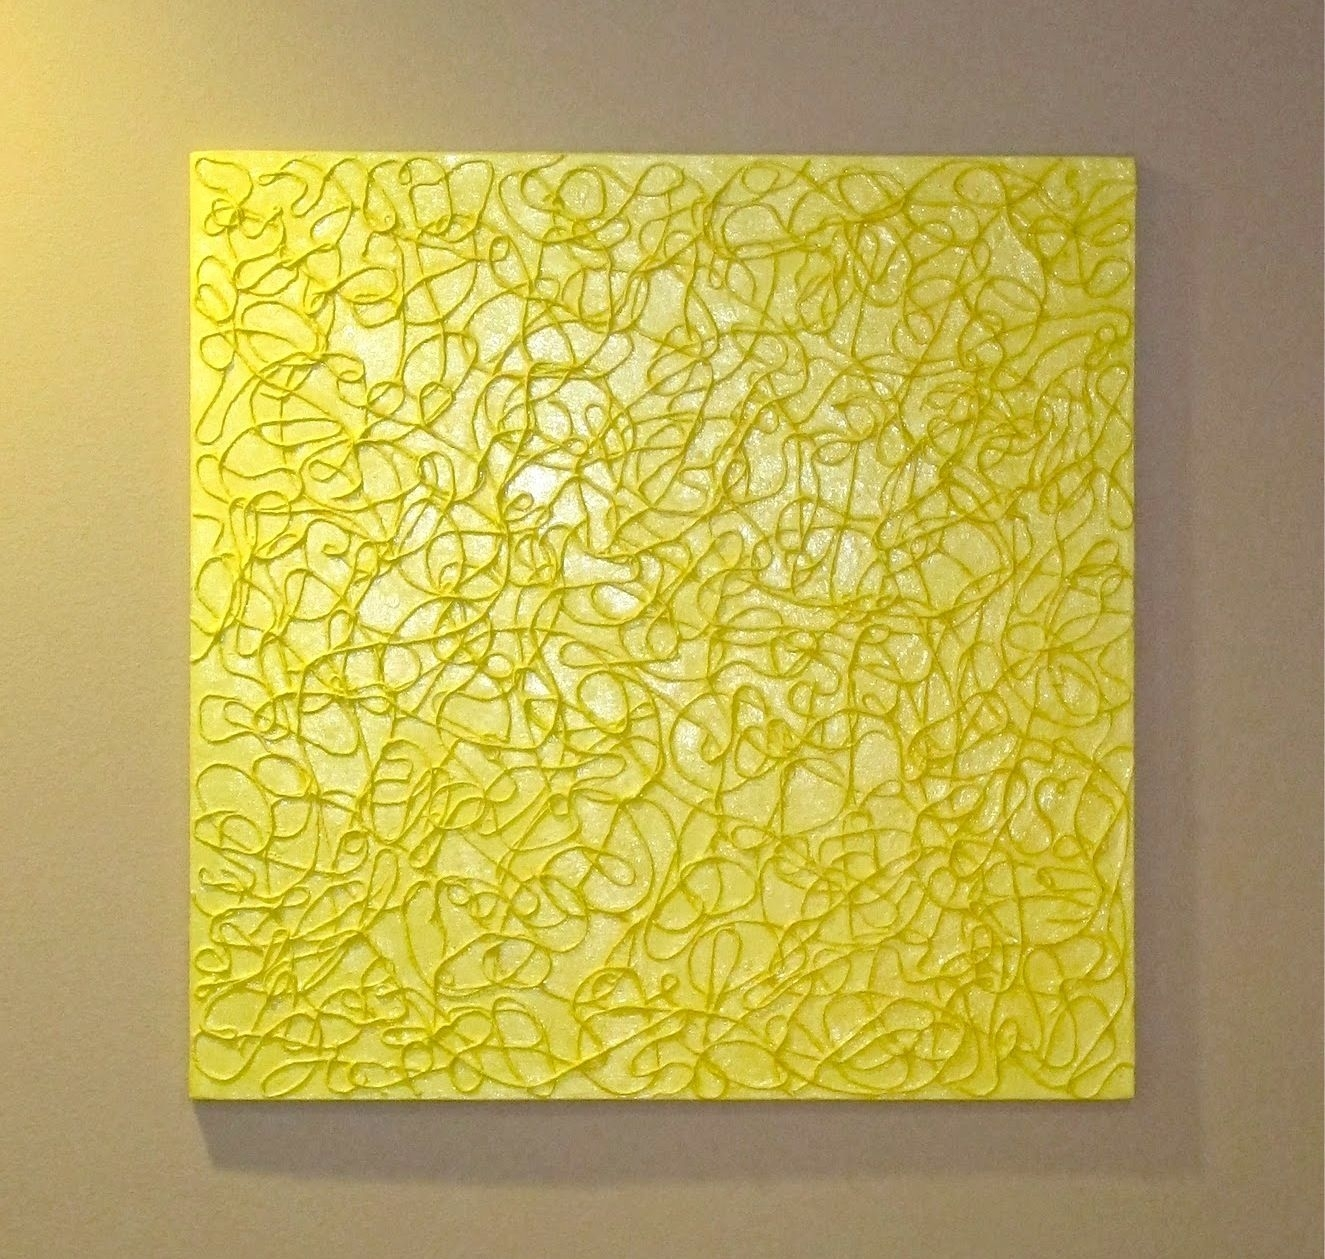 12 Simple Wall Art Projects To Make | Yarns, Canvases And Craft Intended For Best And Newest Textured Fabric Wall Art (View 4 of 15)